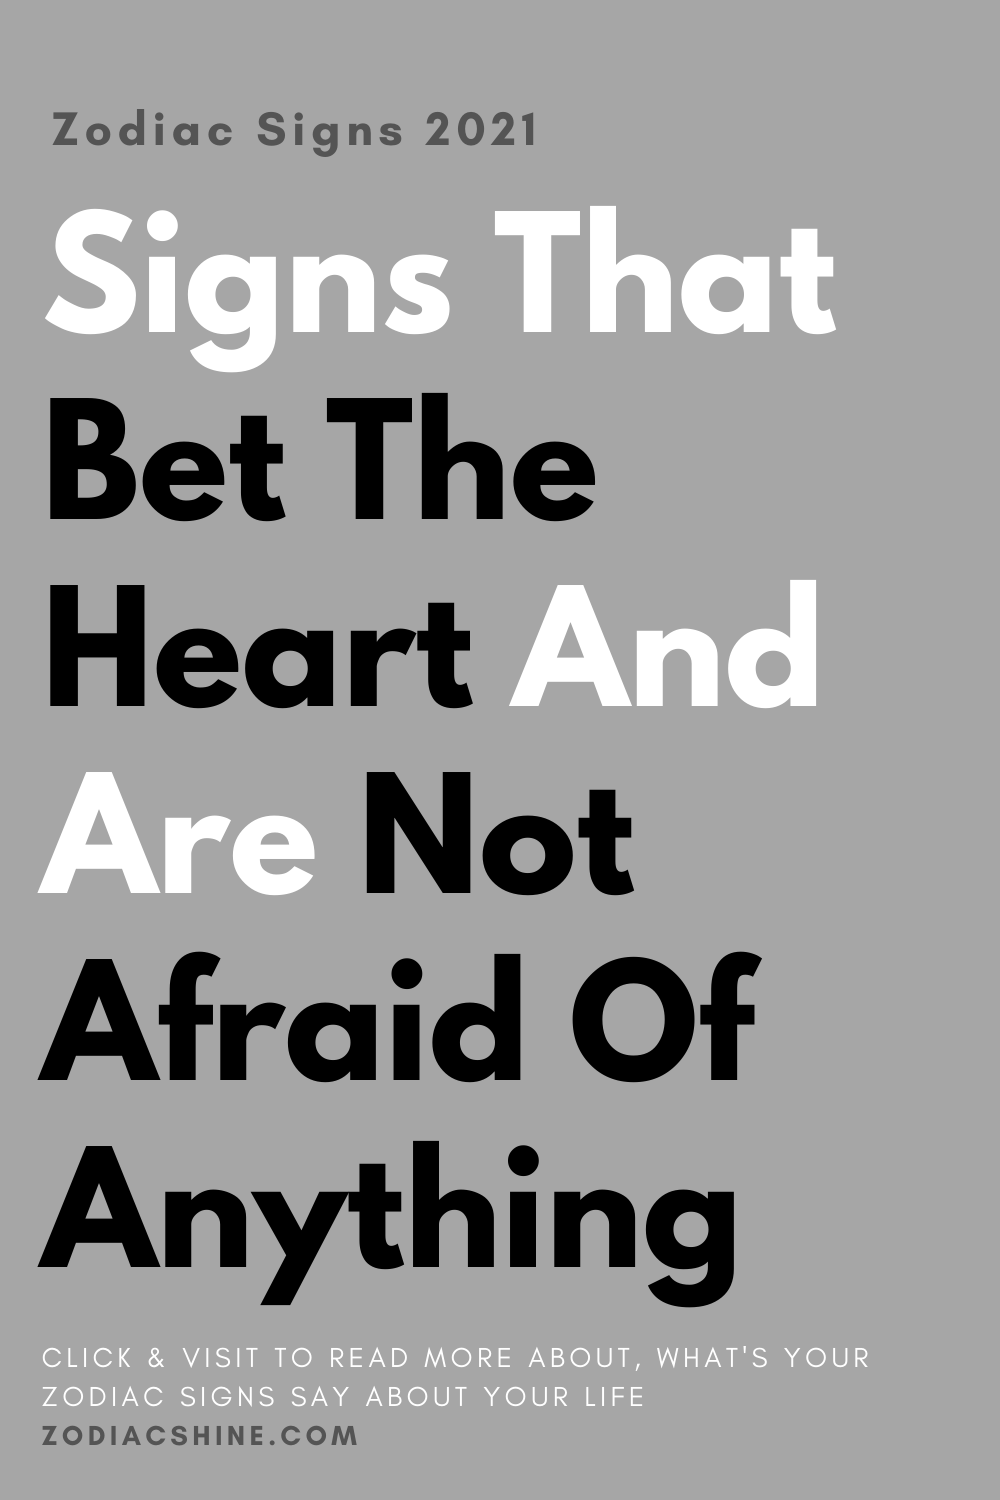 Signs That Bet The Heart And Are Not Afraid Of Anything